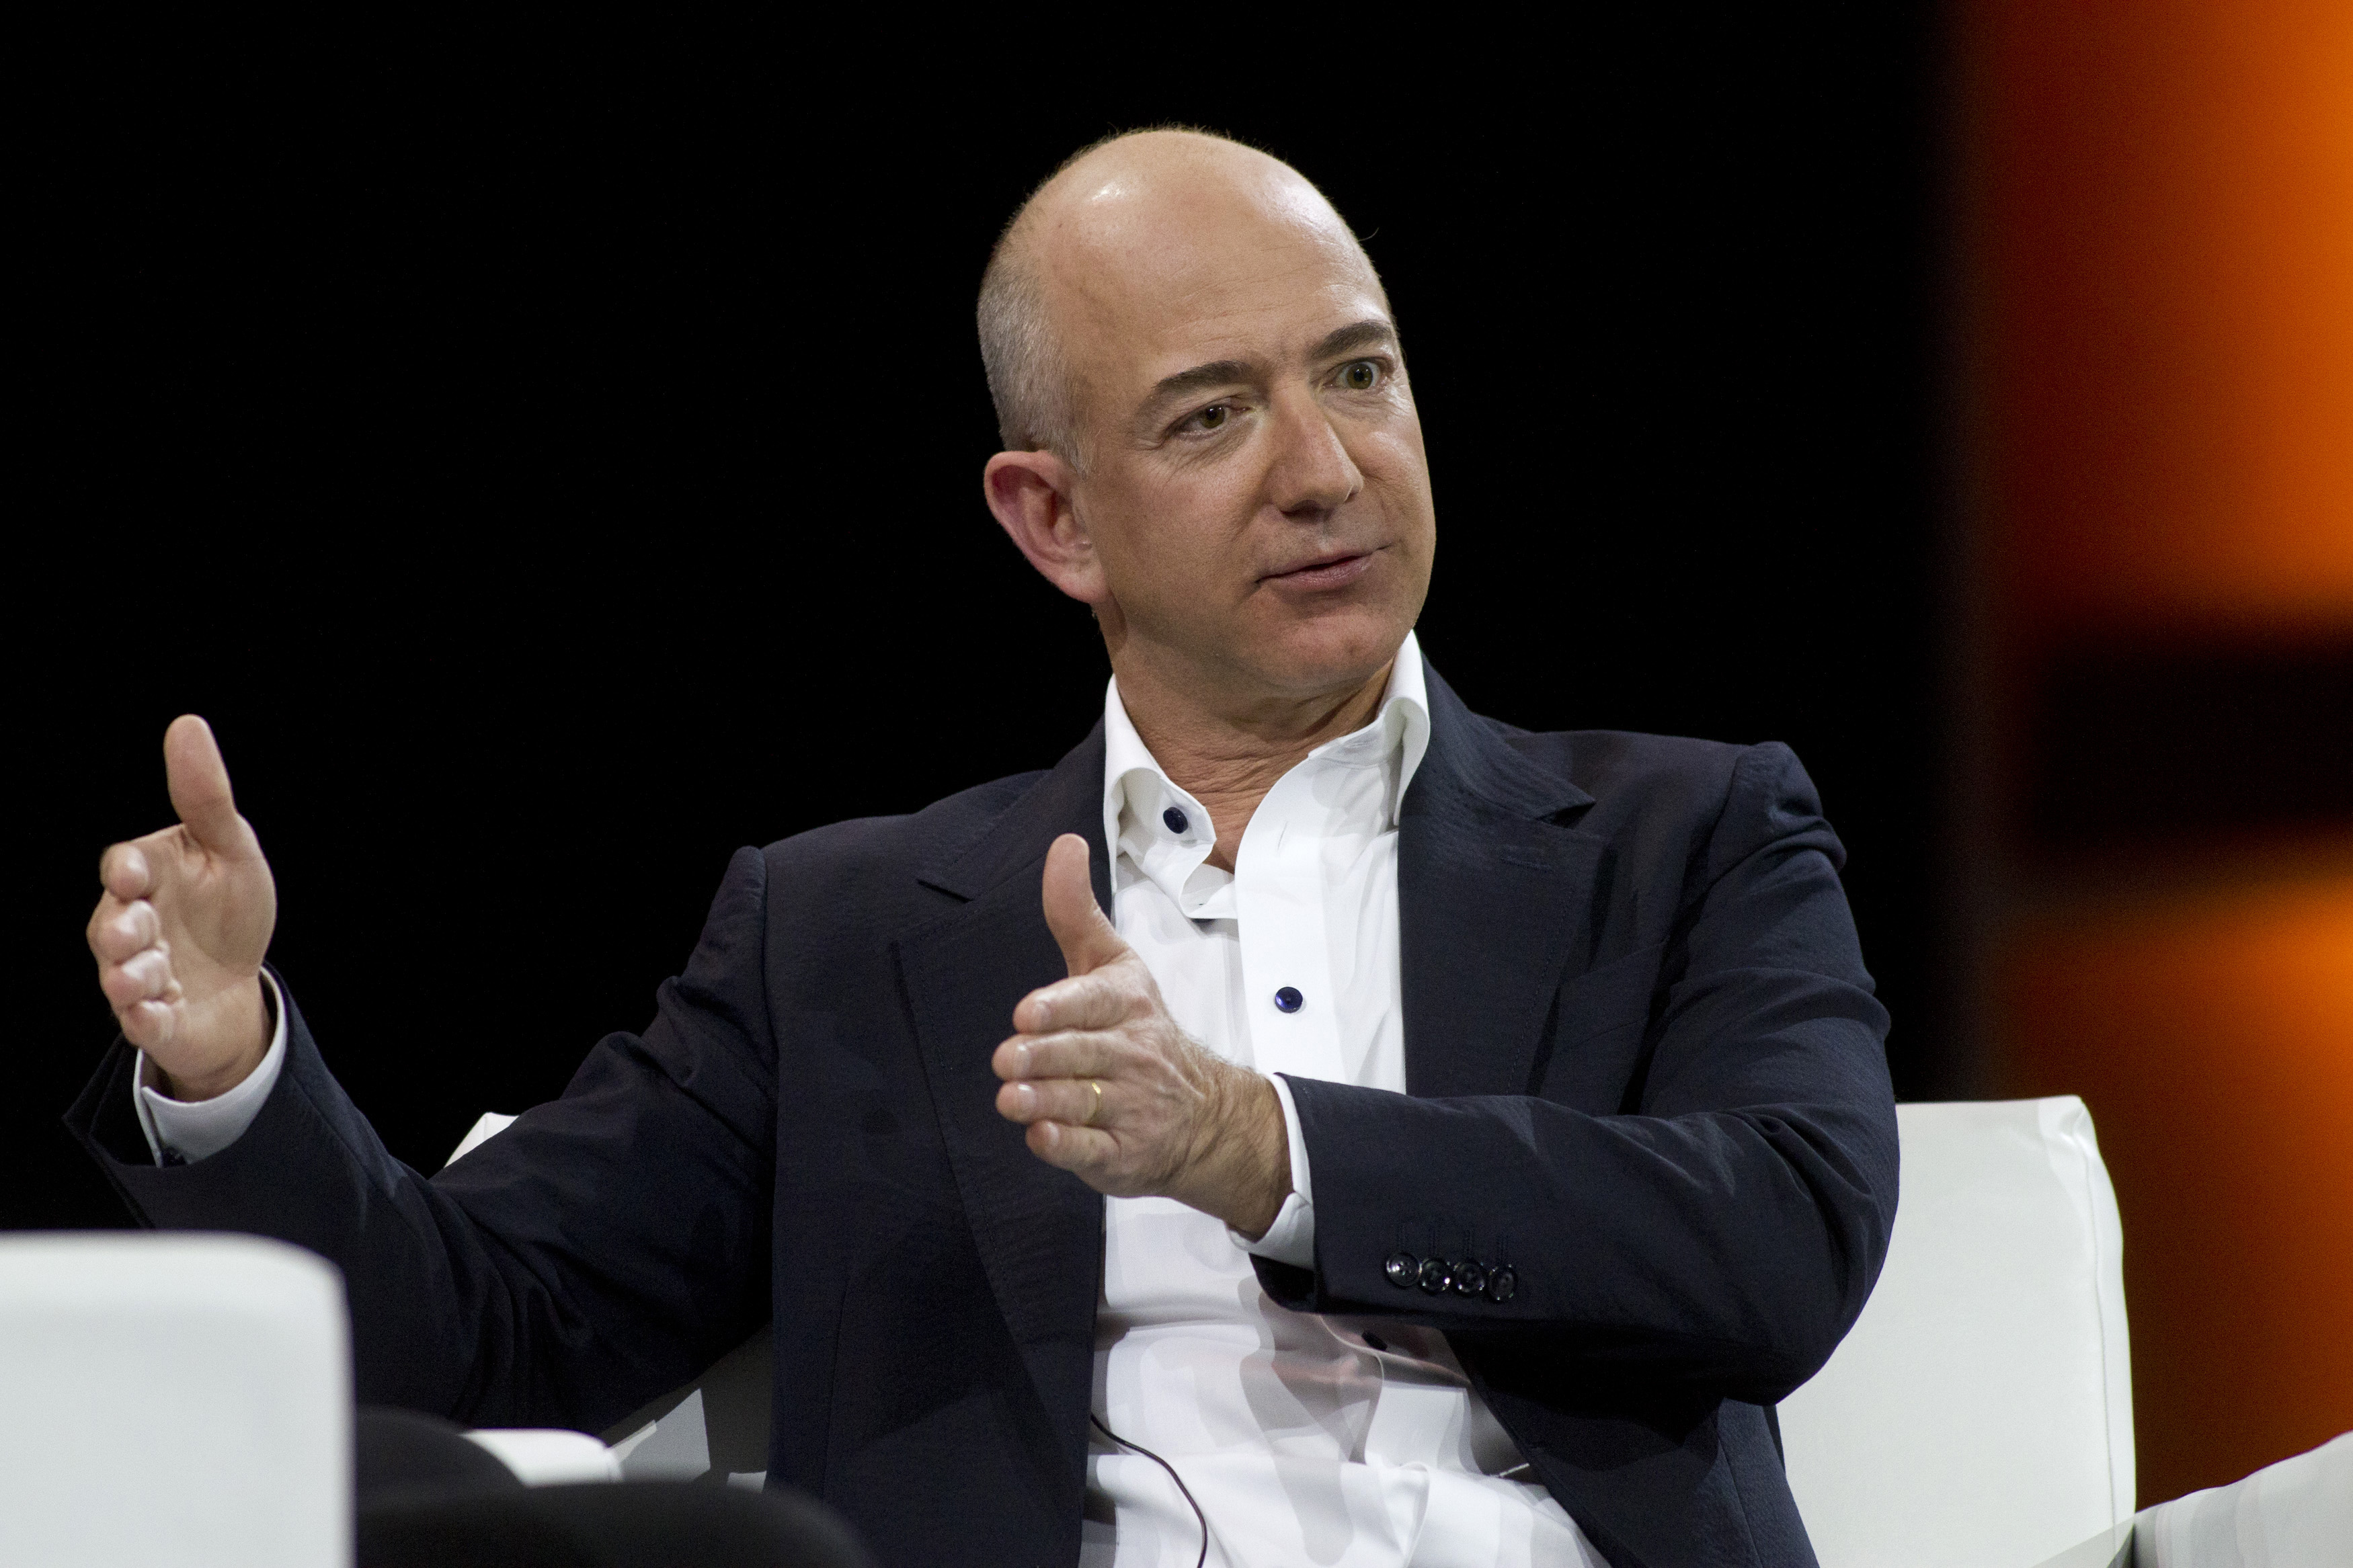 jeff bezos - photo #12